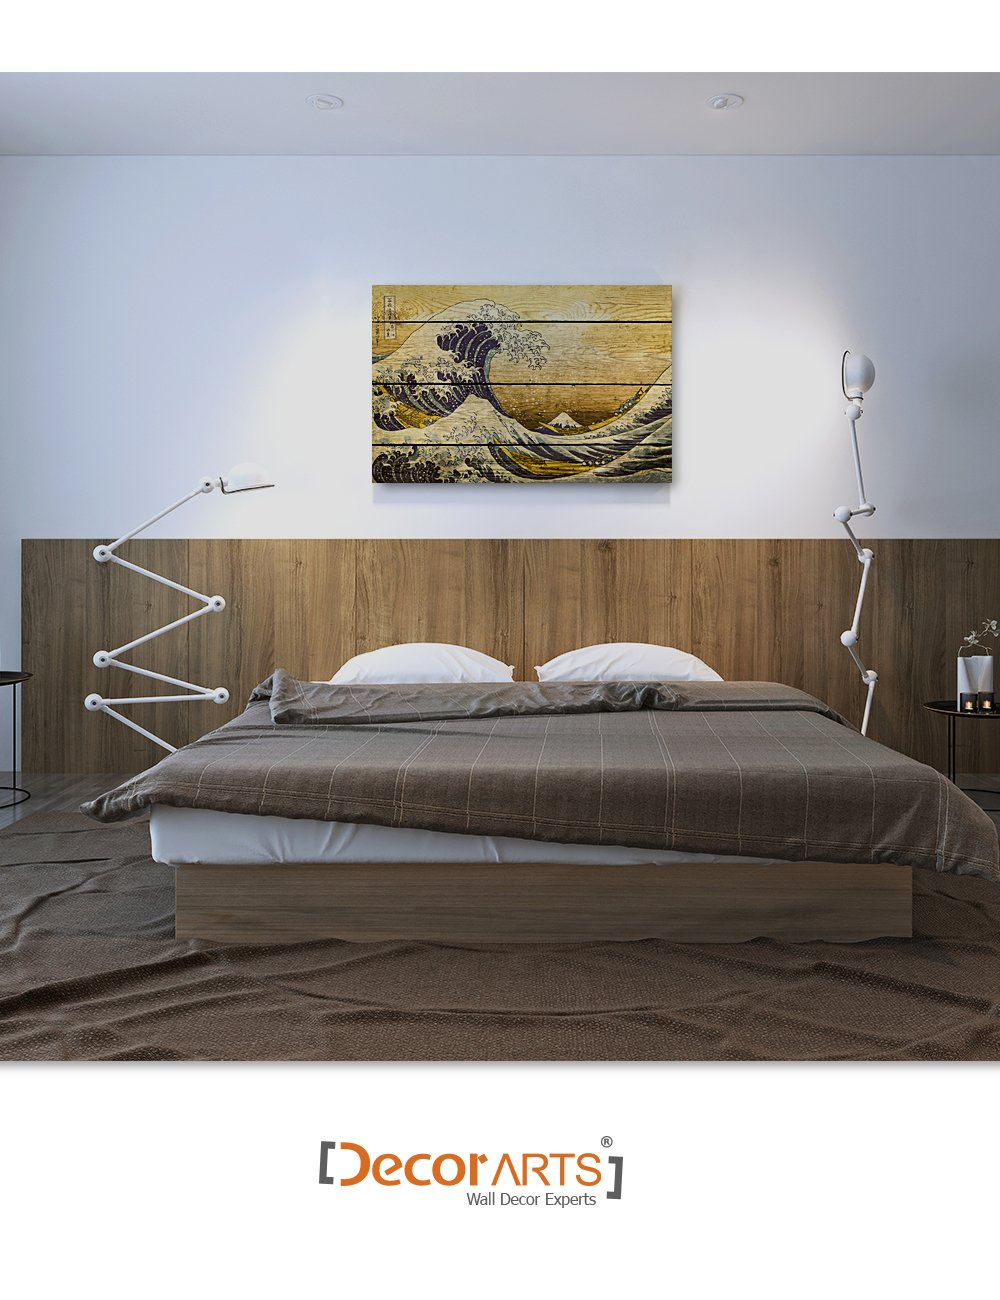 Giclee Print Wall Art for Home Decor and Wall Decor.30x20 x1.5 There is Always Hope Graffiti Artworks by Banksy DECORARTS